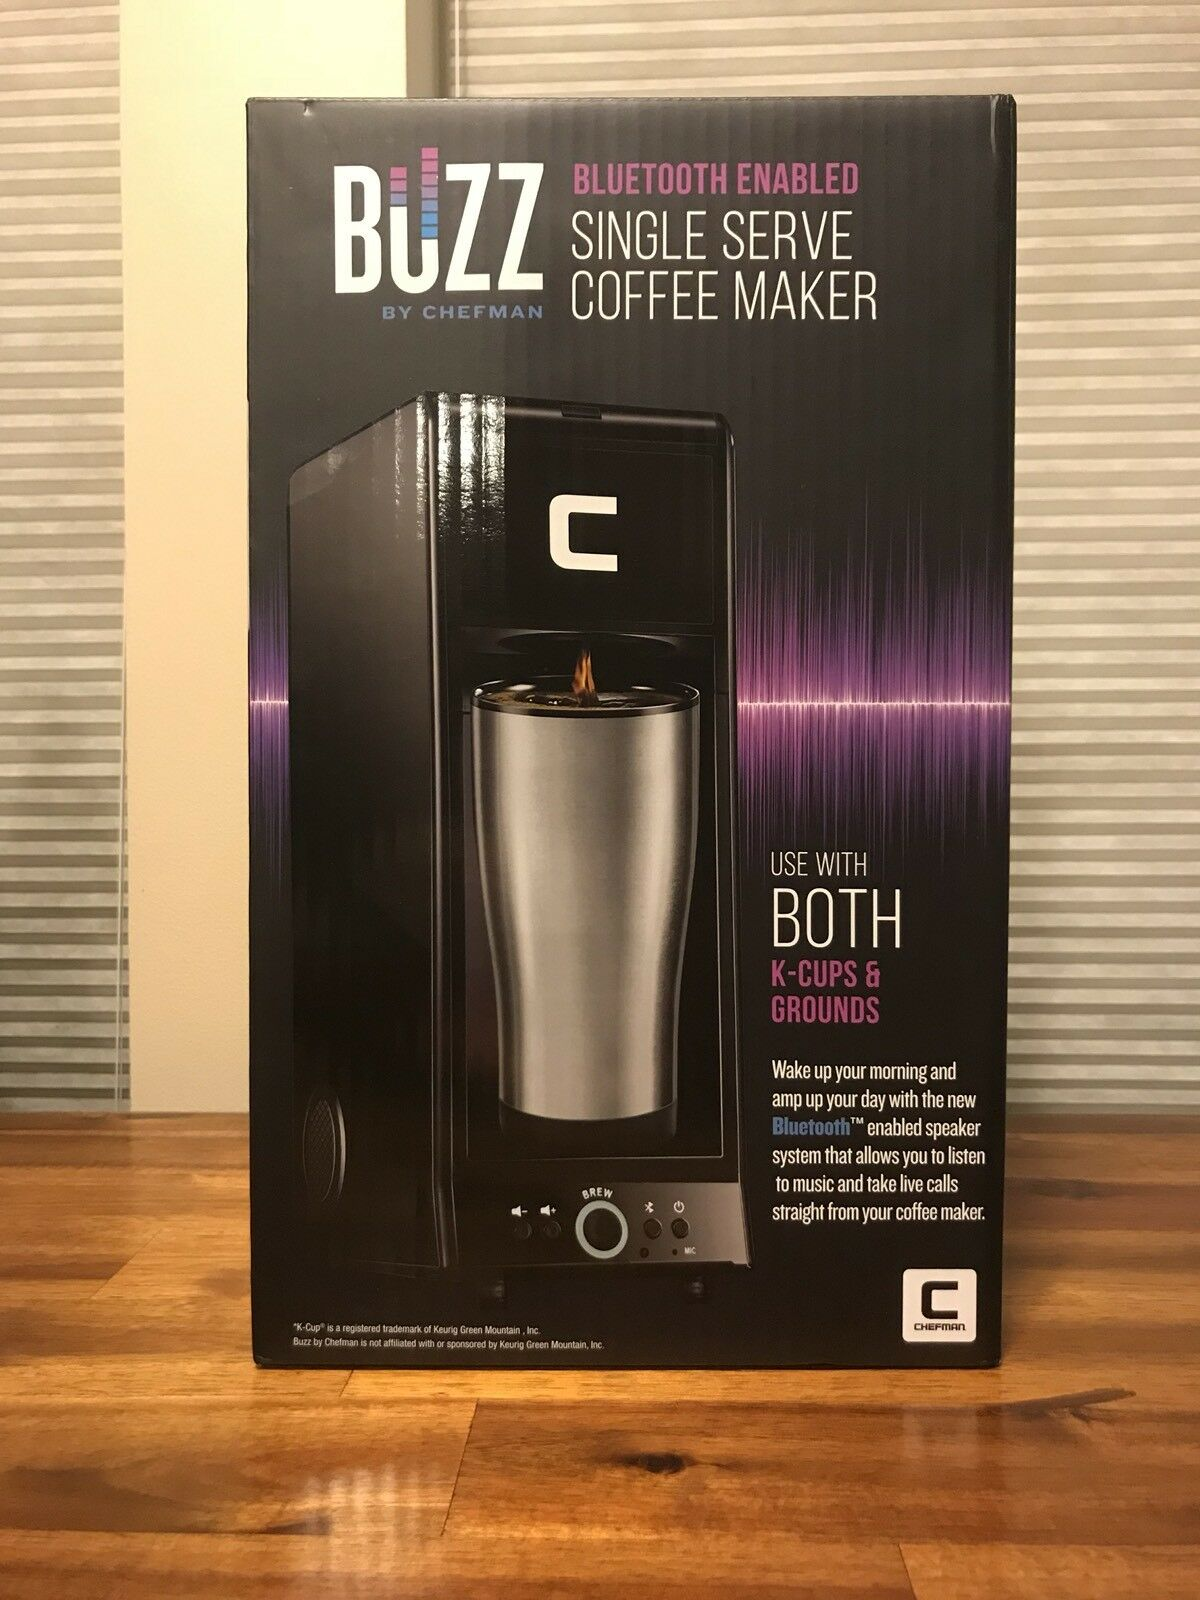 Coffee Maker K Cup Buzz Brewer blueetooth Enabled Speaker Single Serve Plastic